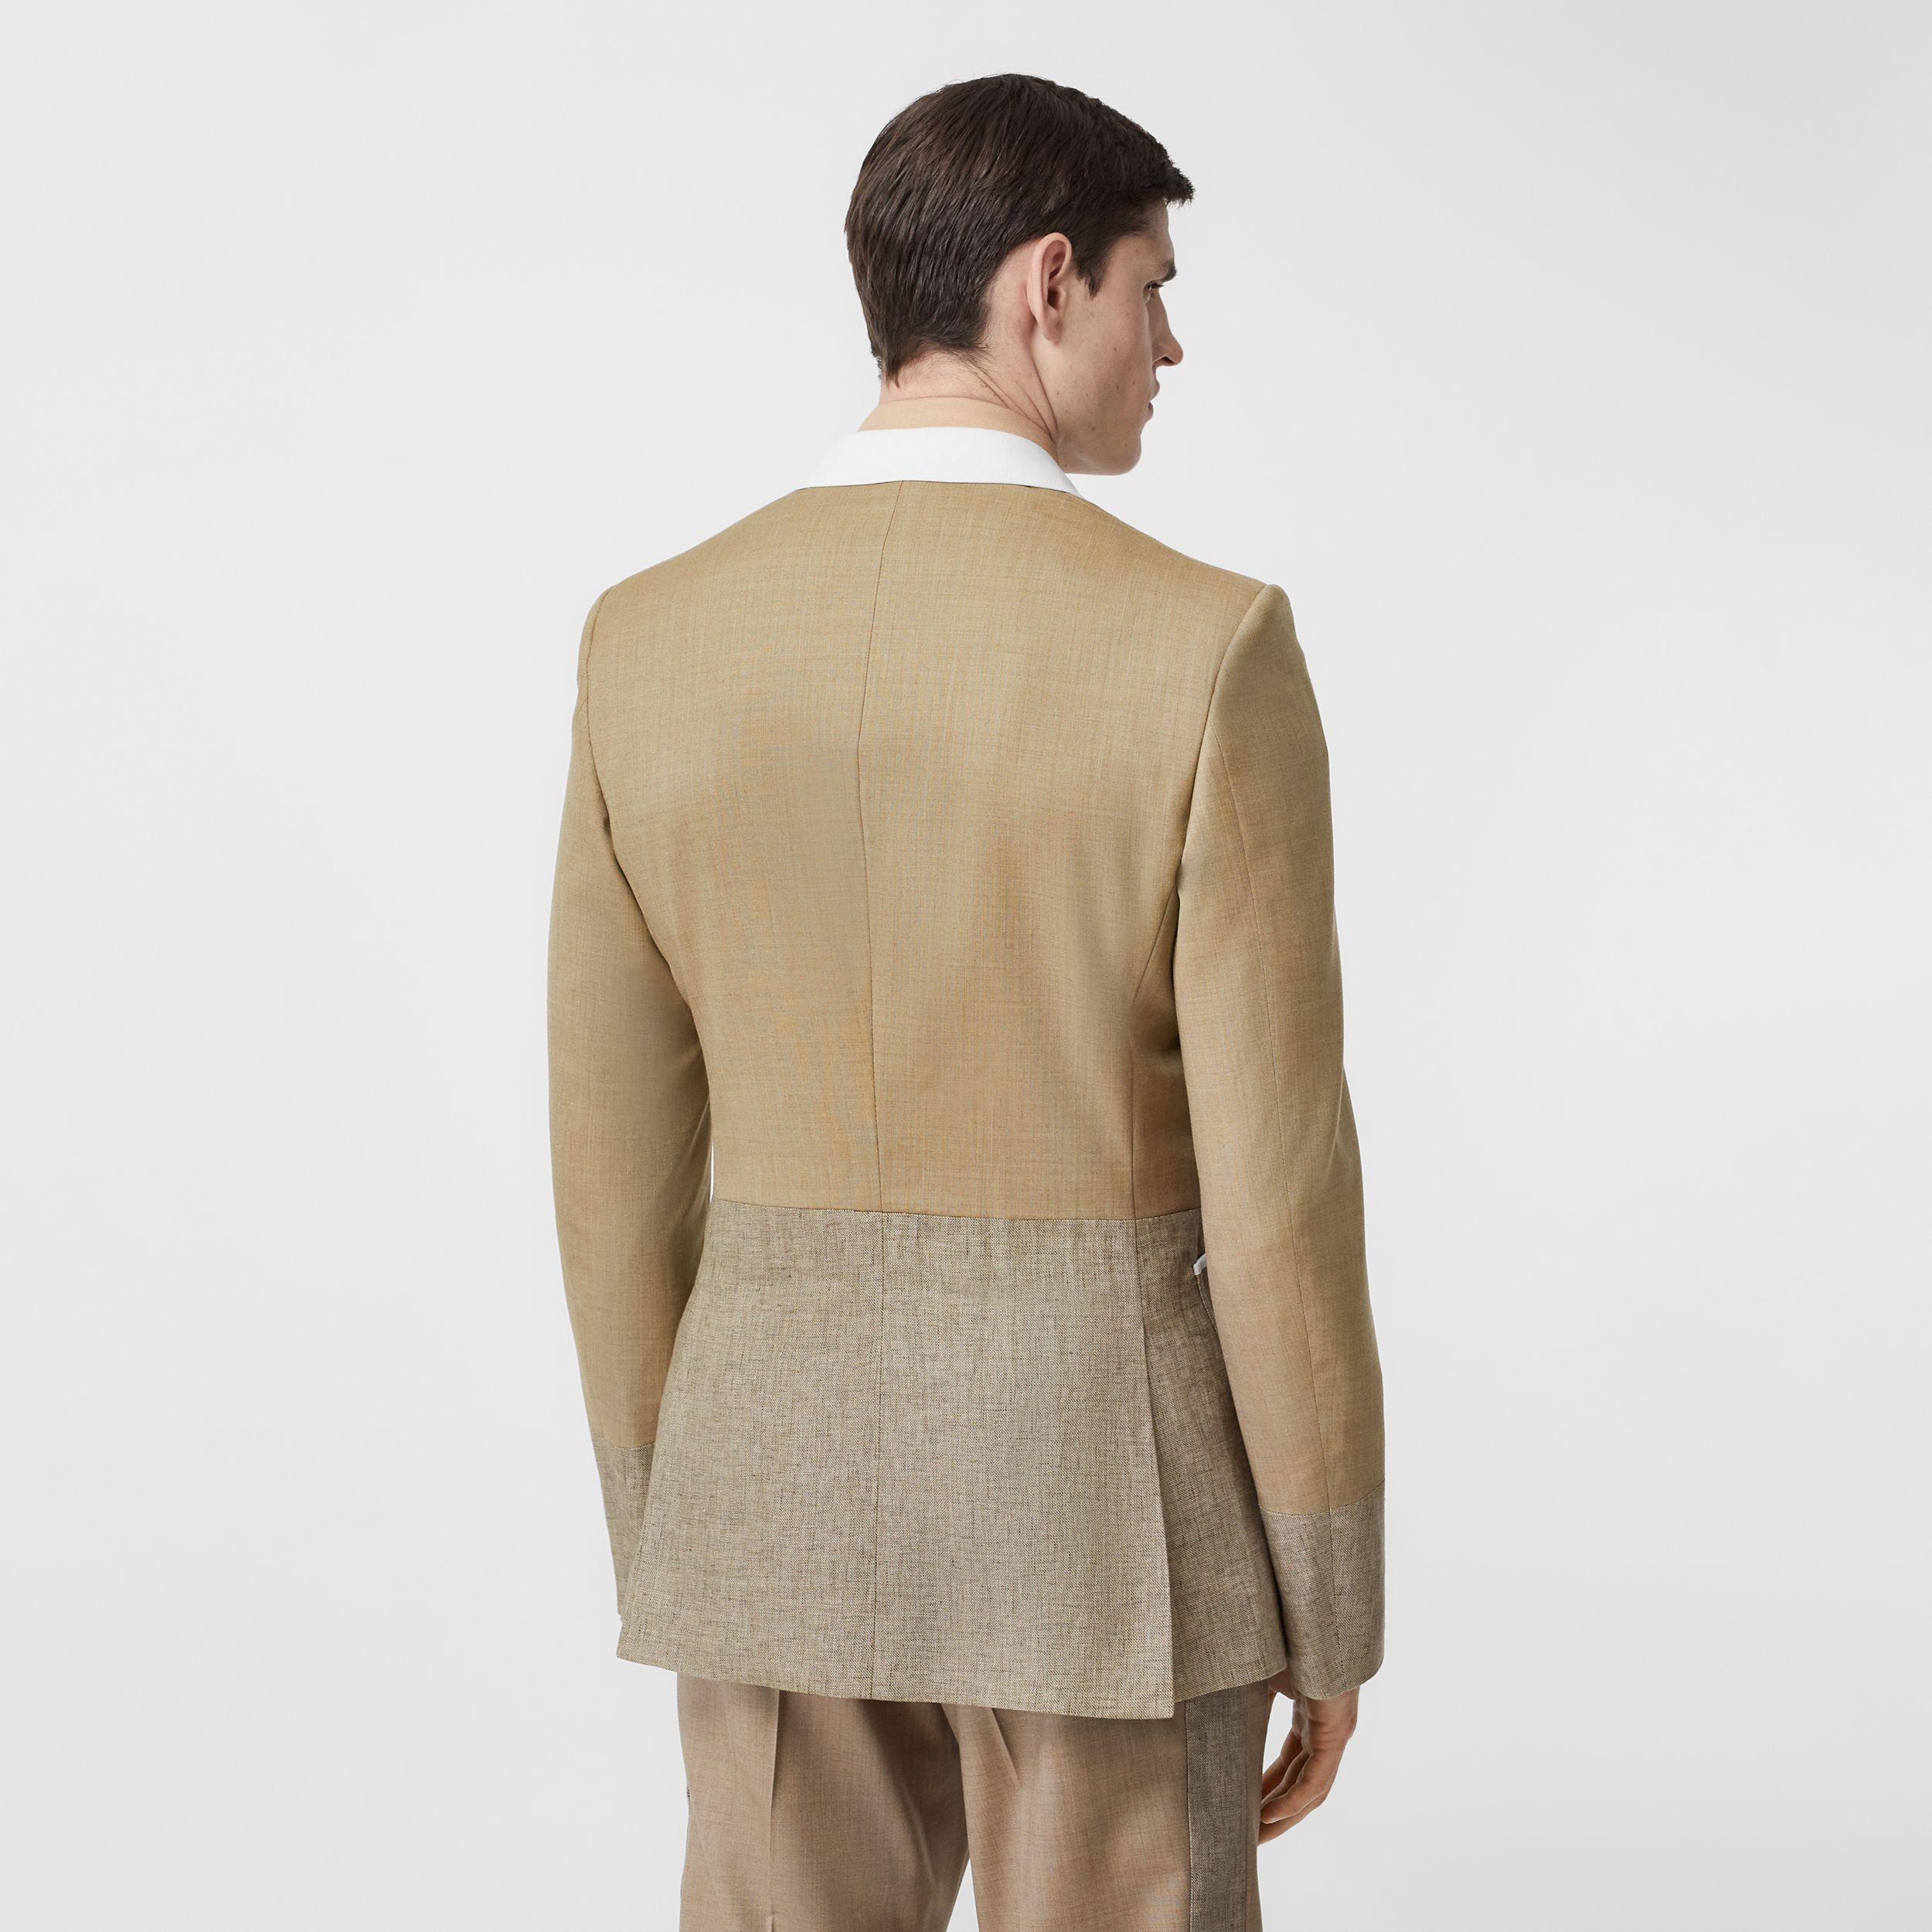 English Fit Wool Cashmere and Linen Tailored Jacket in Pecan Melange - Men | Burberry - 3